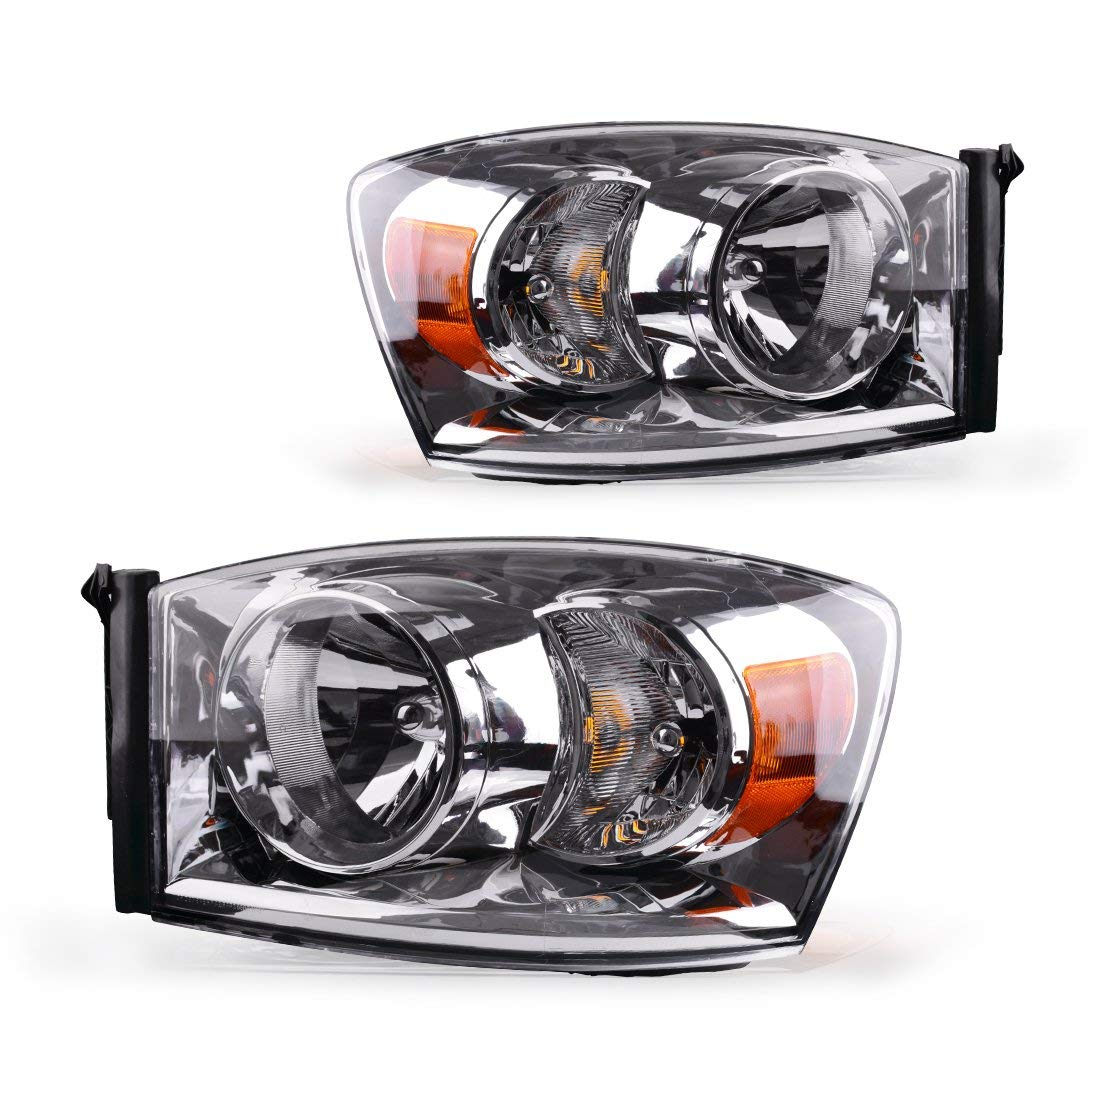 LED Halo Ring Chrome Projector Headlight Headlamp Assembly Driver /& Passenger Side For 2006-2008 Dodge RAM 1500 2500 3500